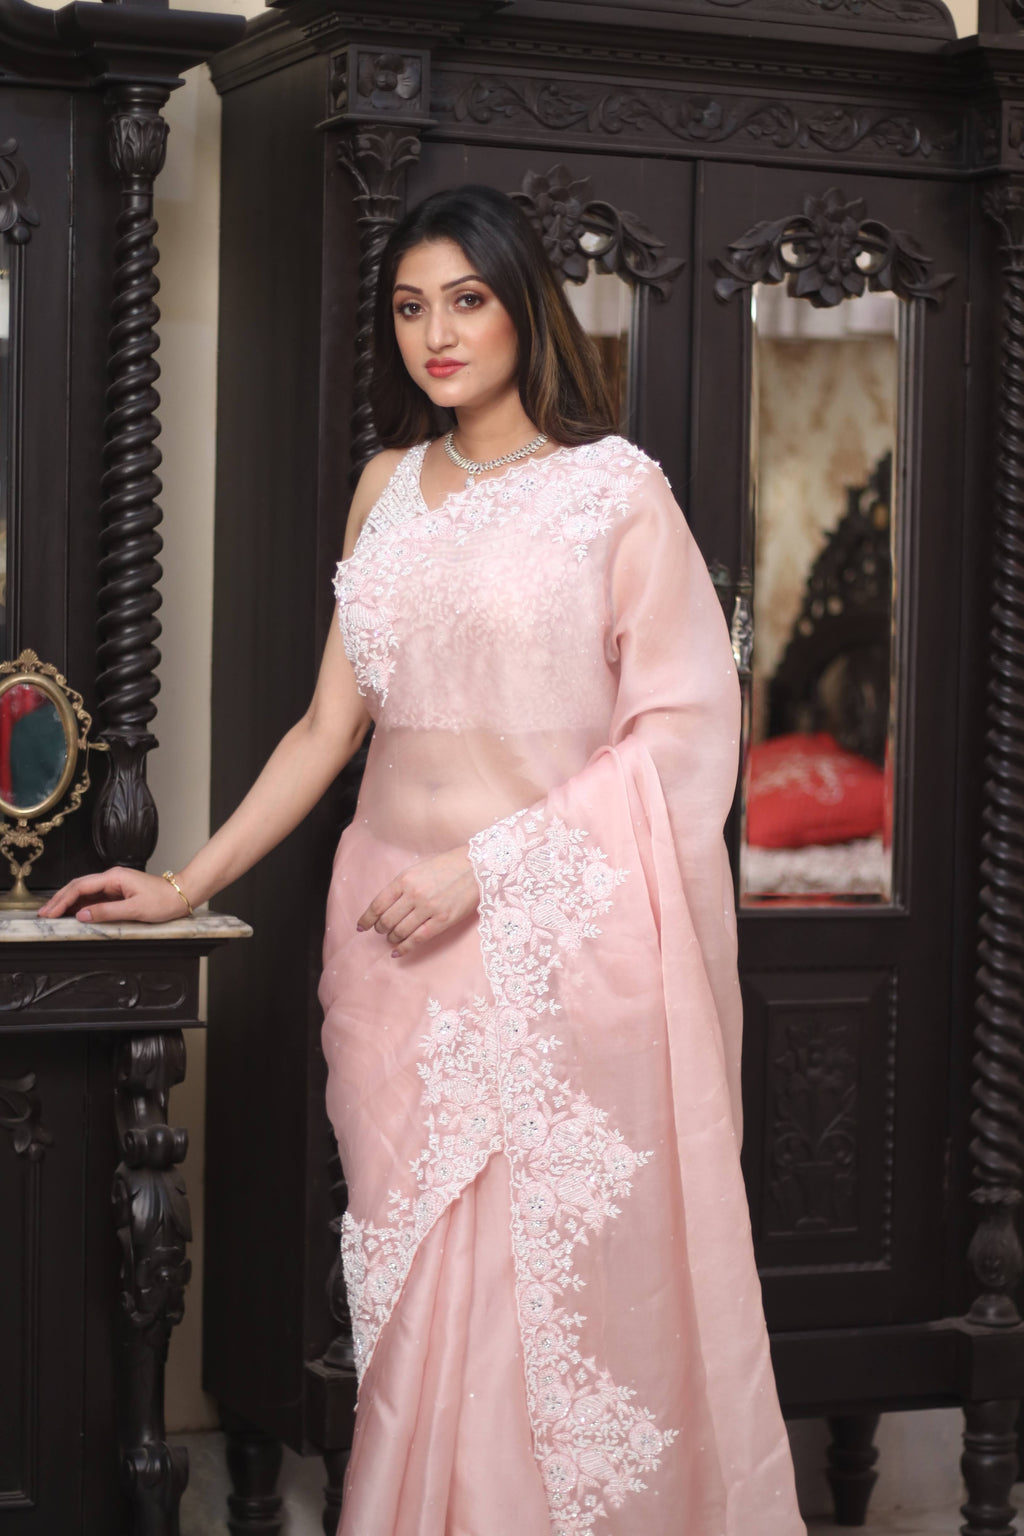 90Z247E-RO Powder Pink Hand Embroidered Designer Organza Sari with Embroidered Blouse